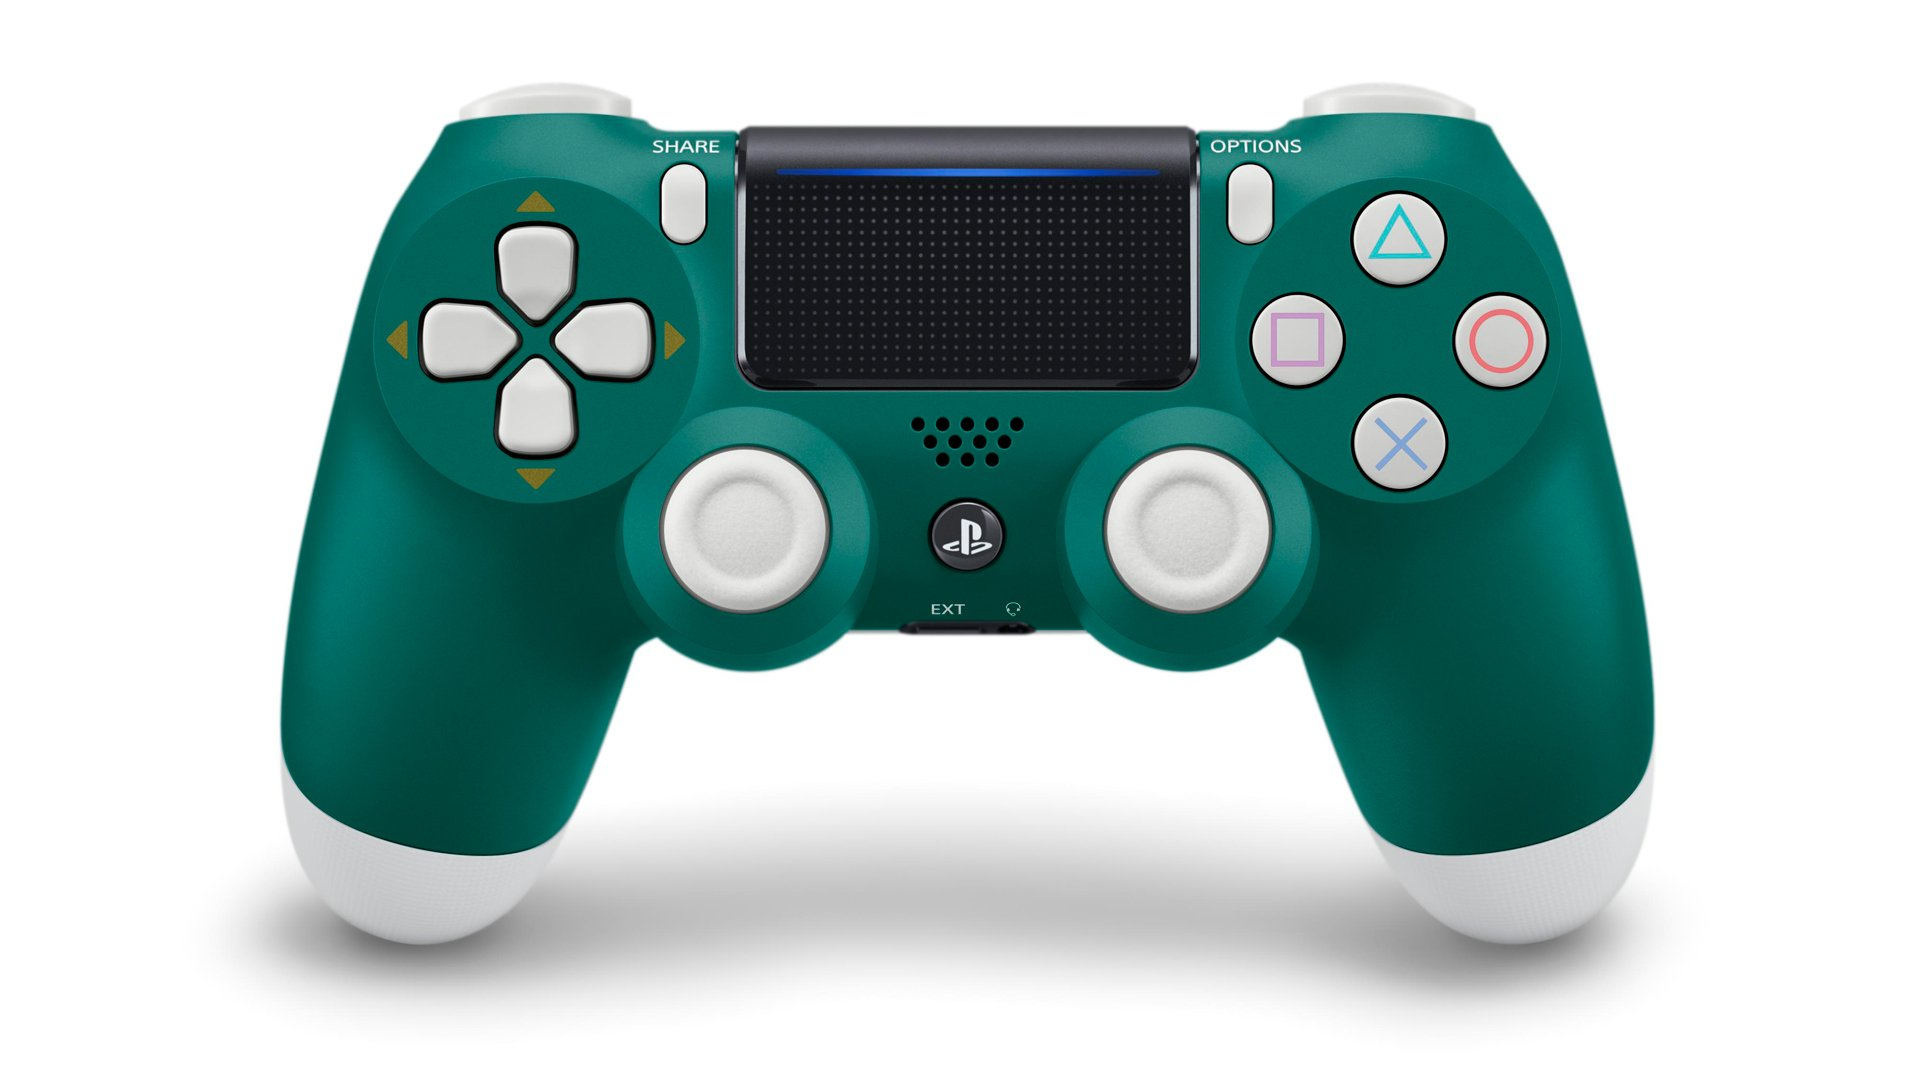 Introducing the newest member of the DualShock 4 family. Say hello to Alpine Green: https://t.co/EBsAEJFW6n https://t.co/kB6oOjKu5H